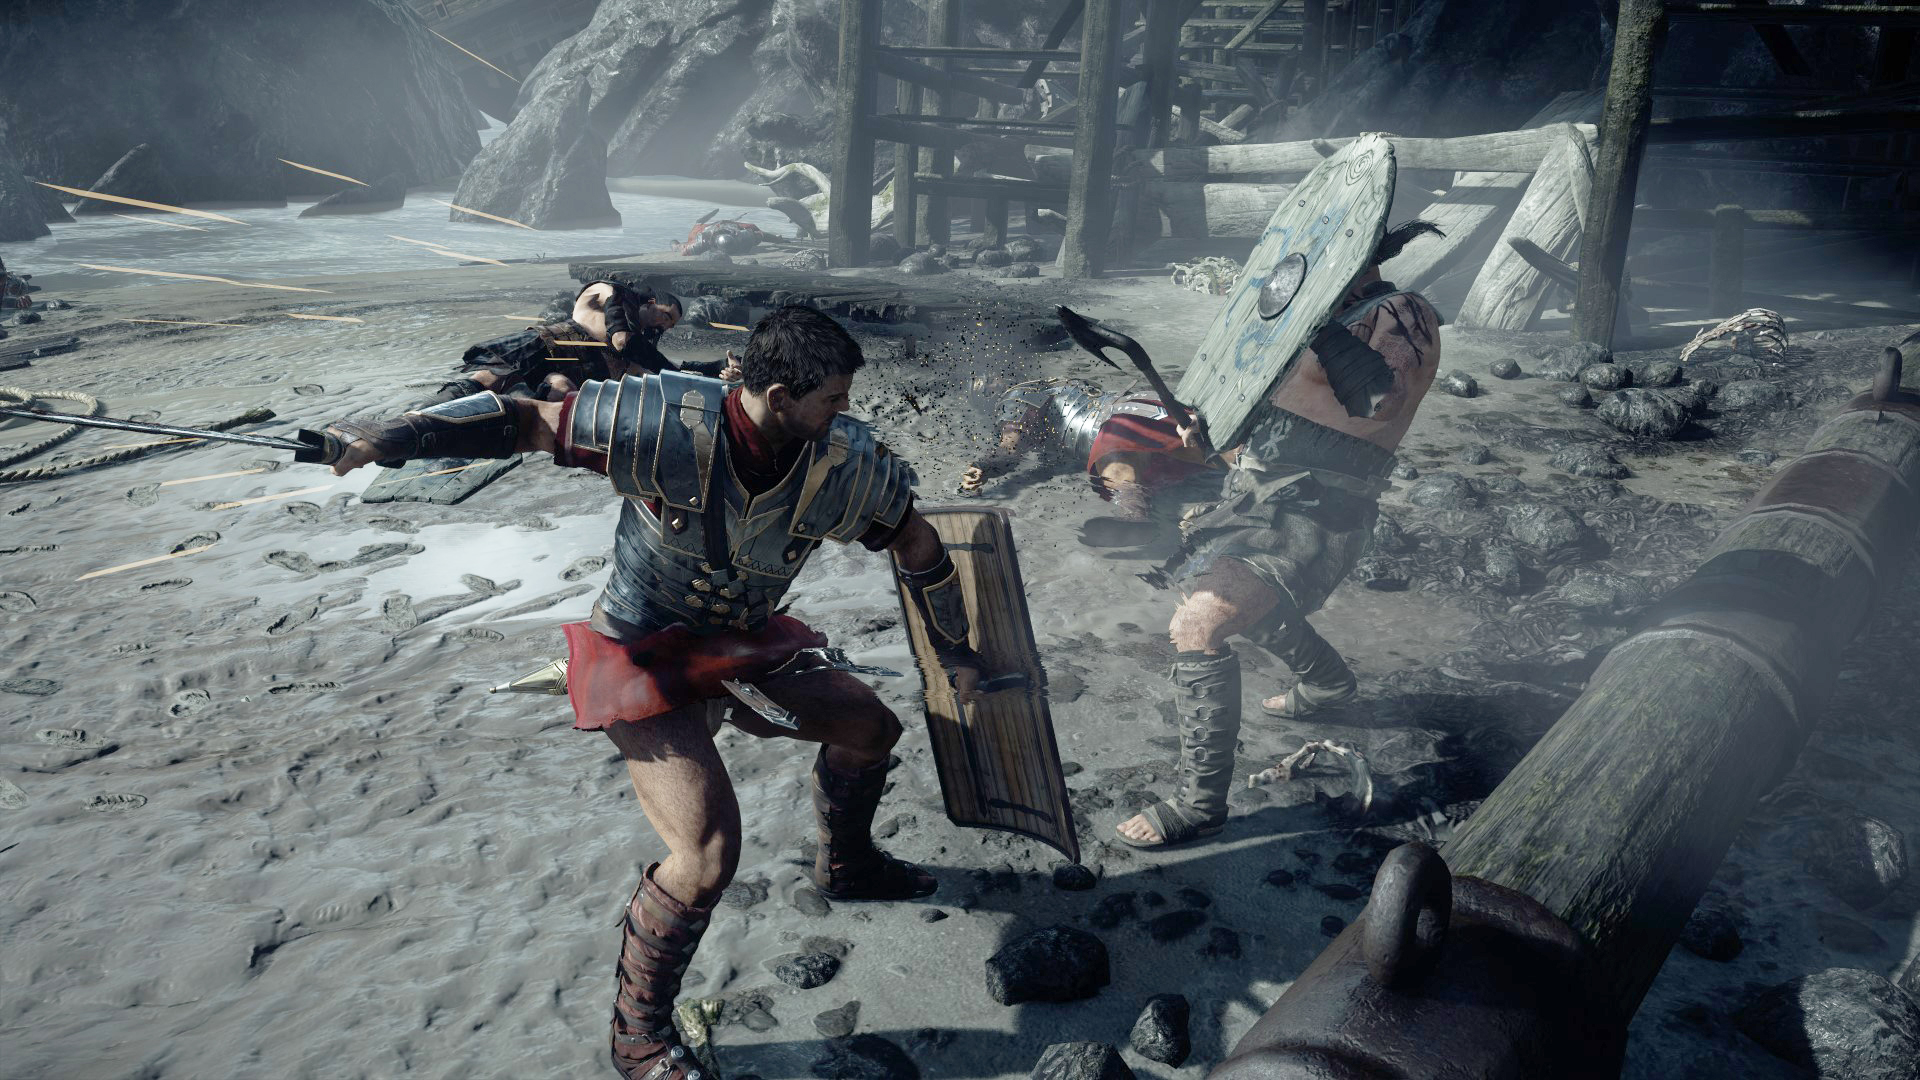 [Gamegokil] Ryse Son Of Rome [Iso] Single Link Direct Link Full Free